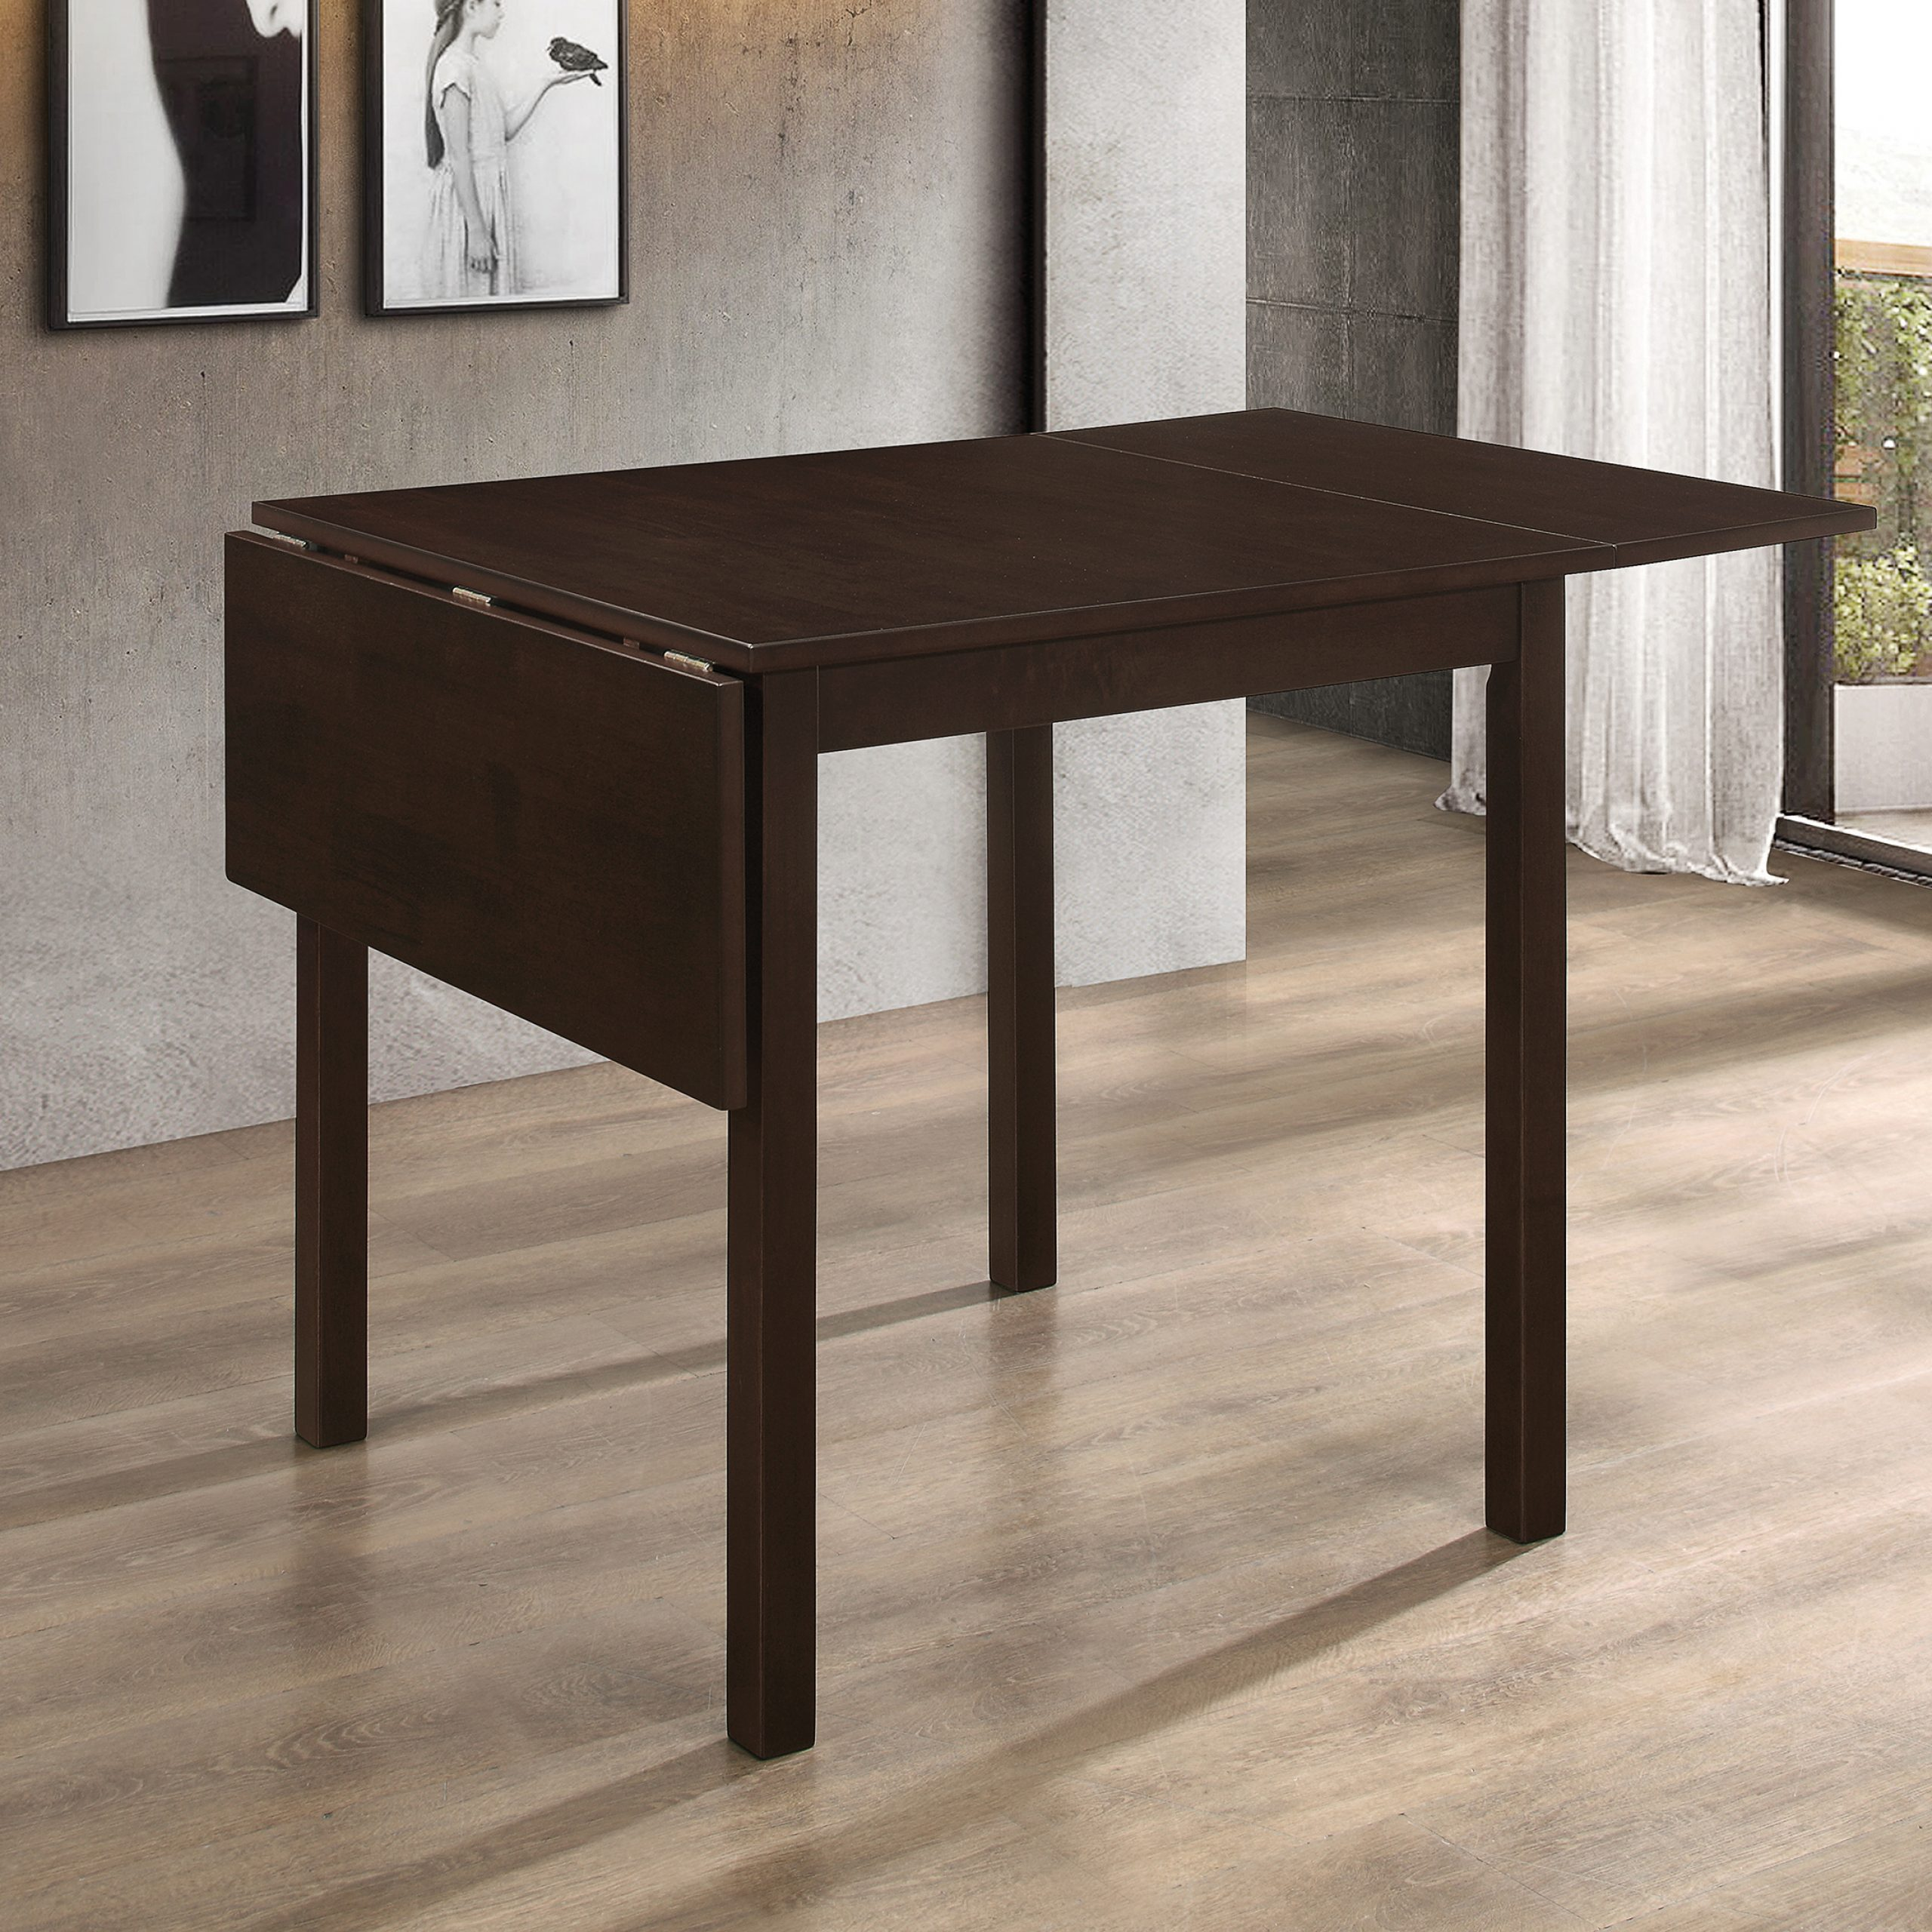 Kelso Rectangular Dining Table With Drop Leaf Cappuccino With Regard To Current Transitional 4 Seating Drop Leaf Casual Dining Tables (View 6 of 25)